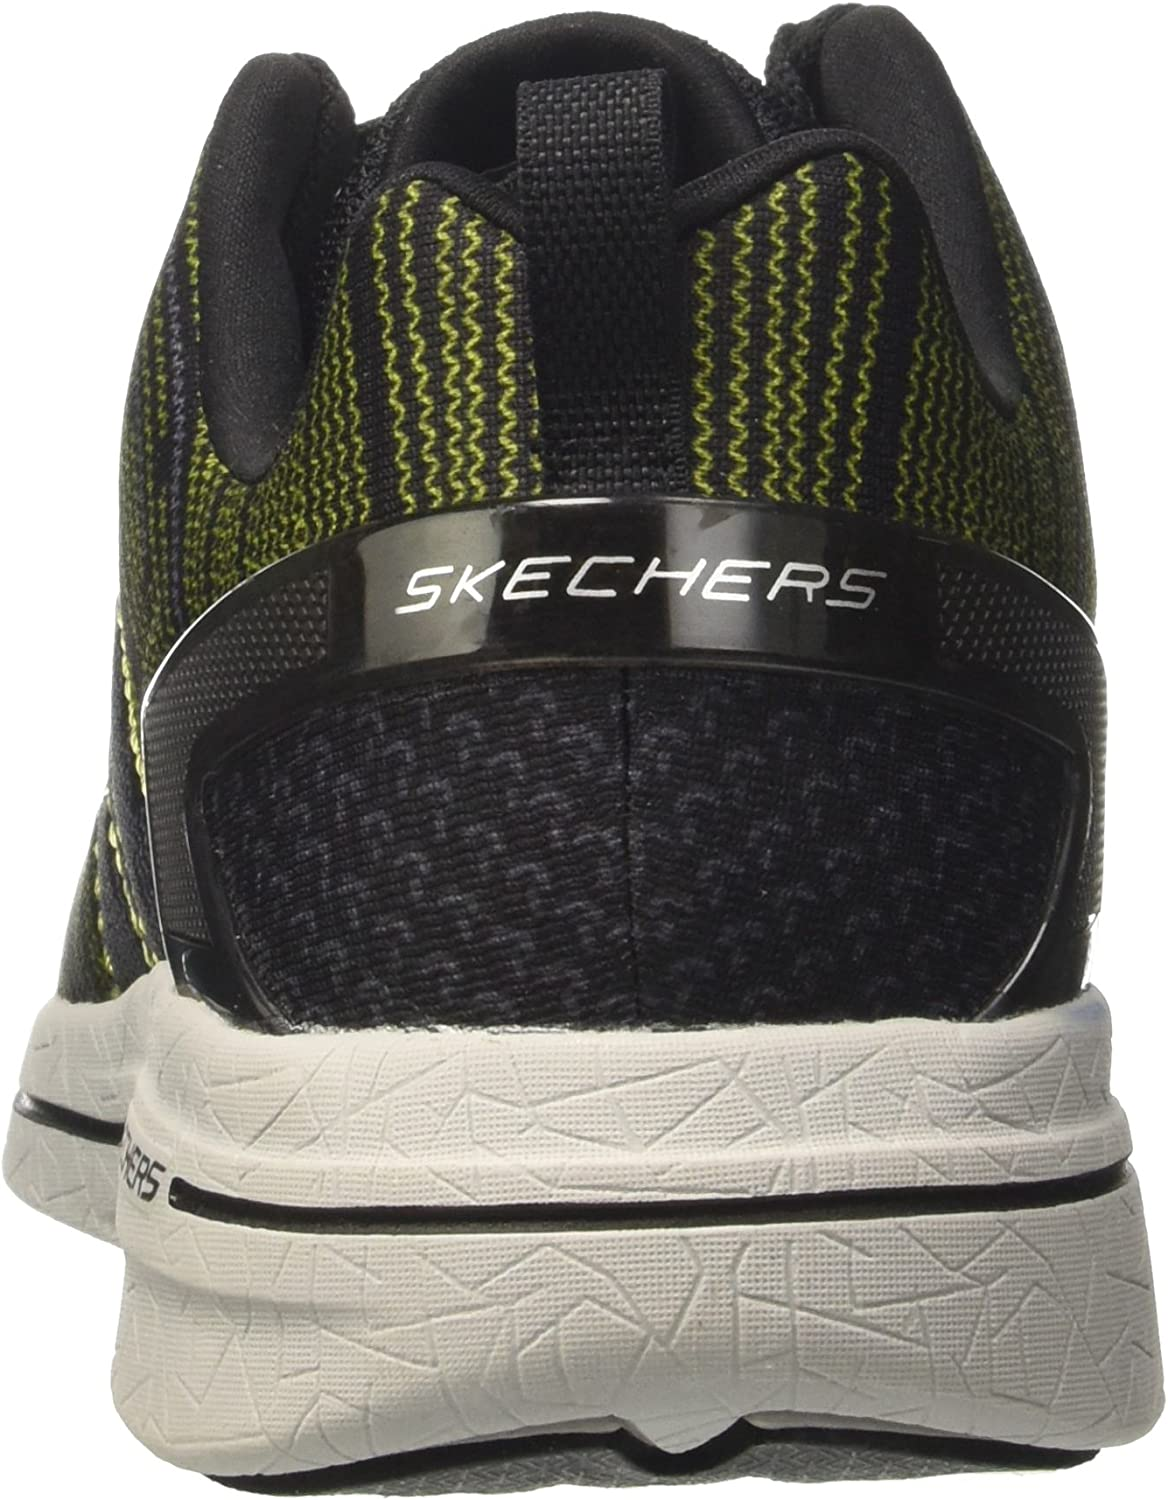 Skechers Burst 2.0 in The Mix II, Sneakers Basses Homme